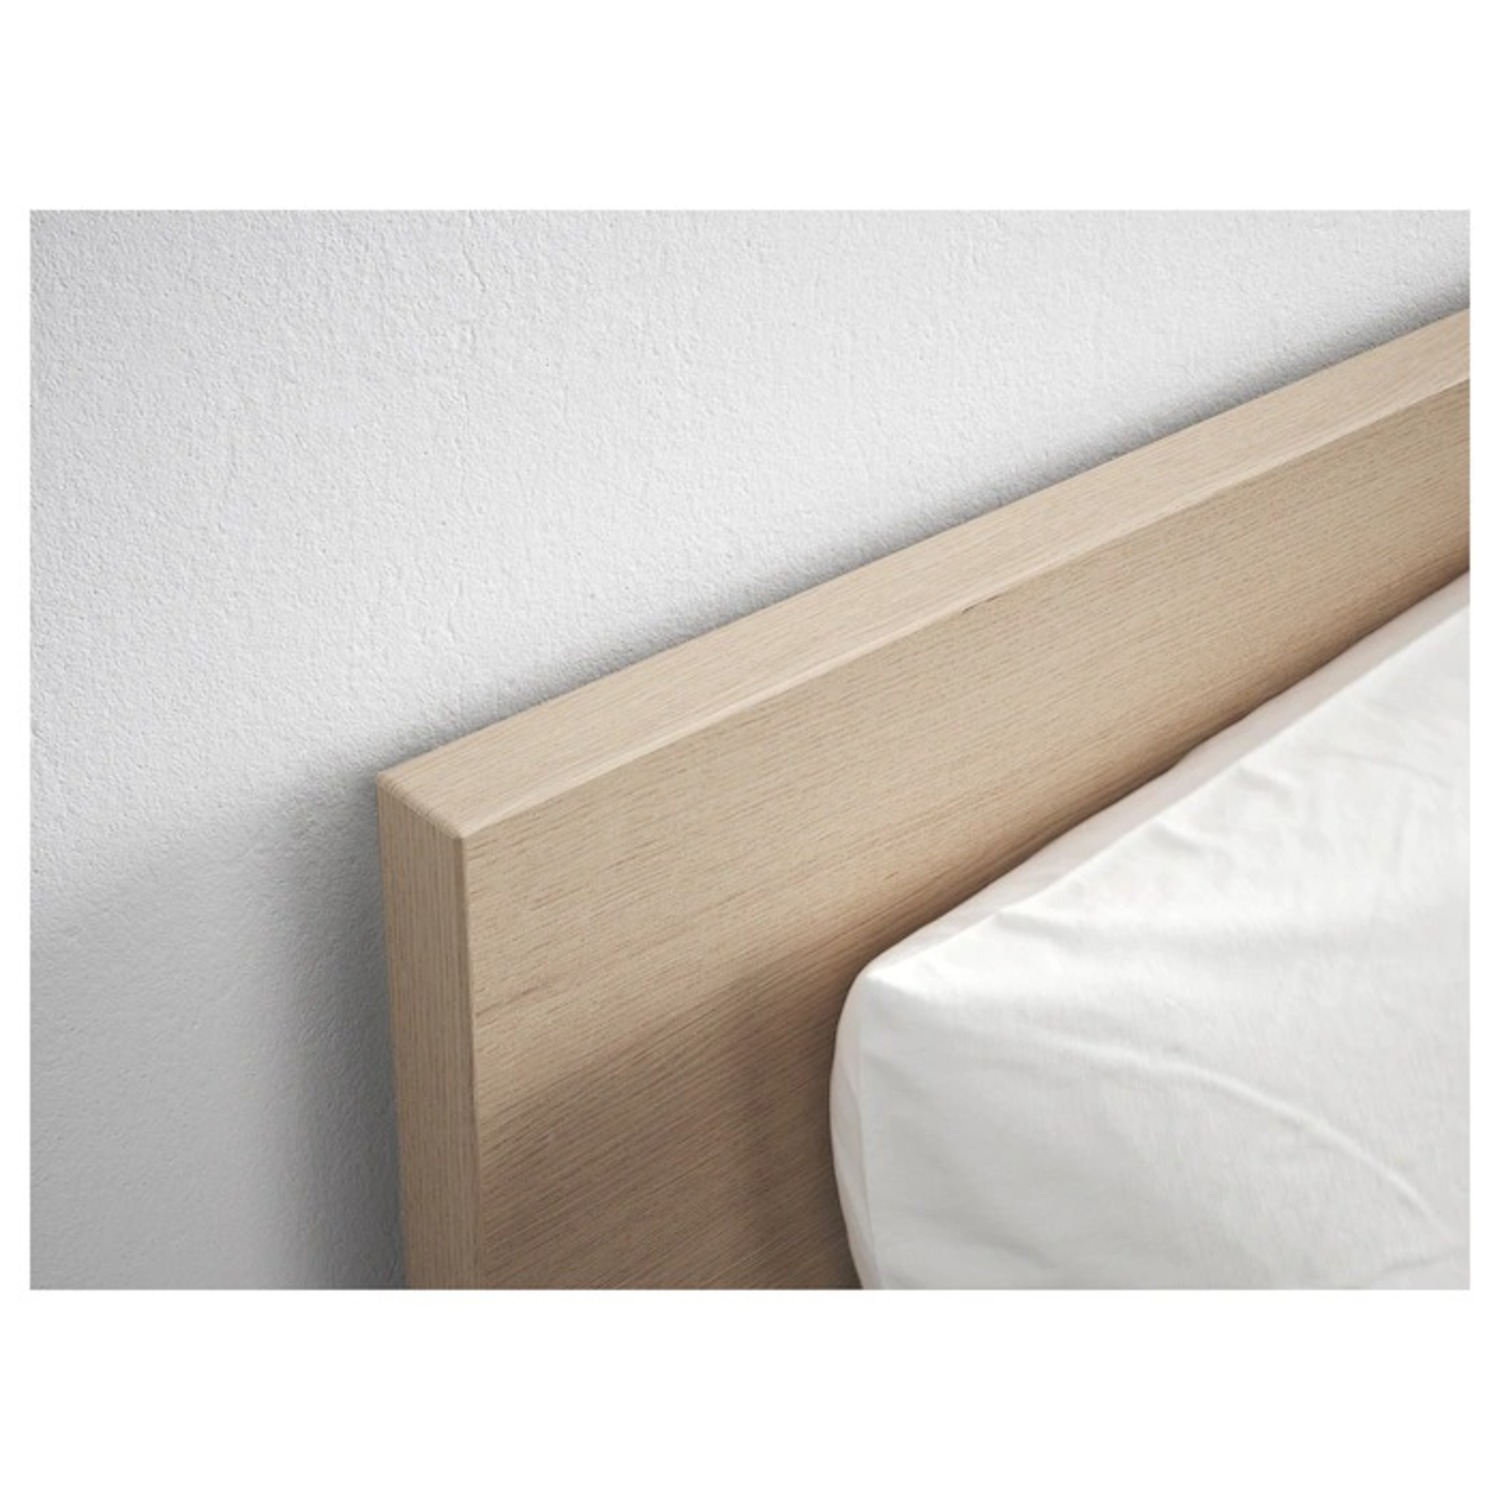 Ikea Malm Queen sized Bed with White Stained Oak Veneer